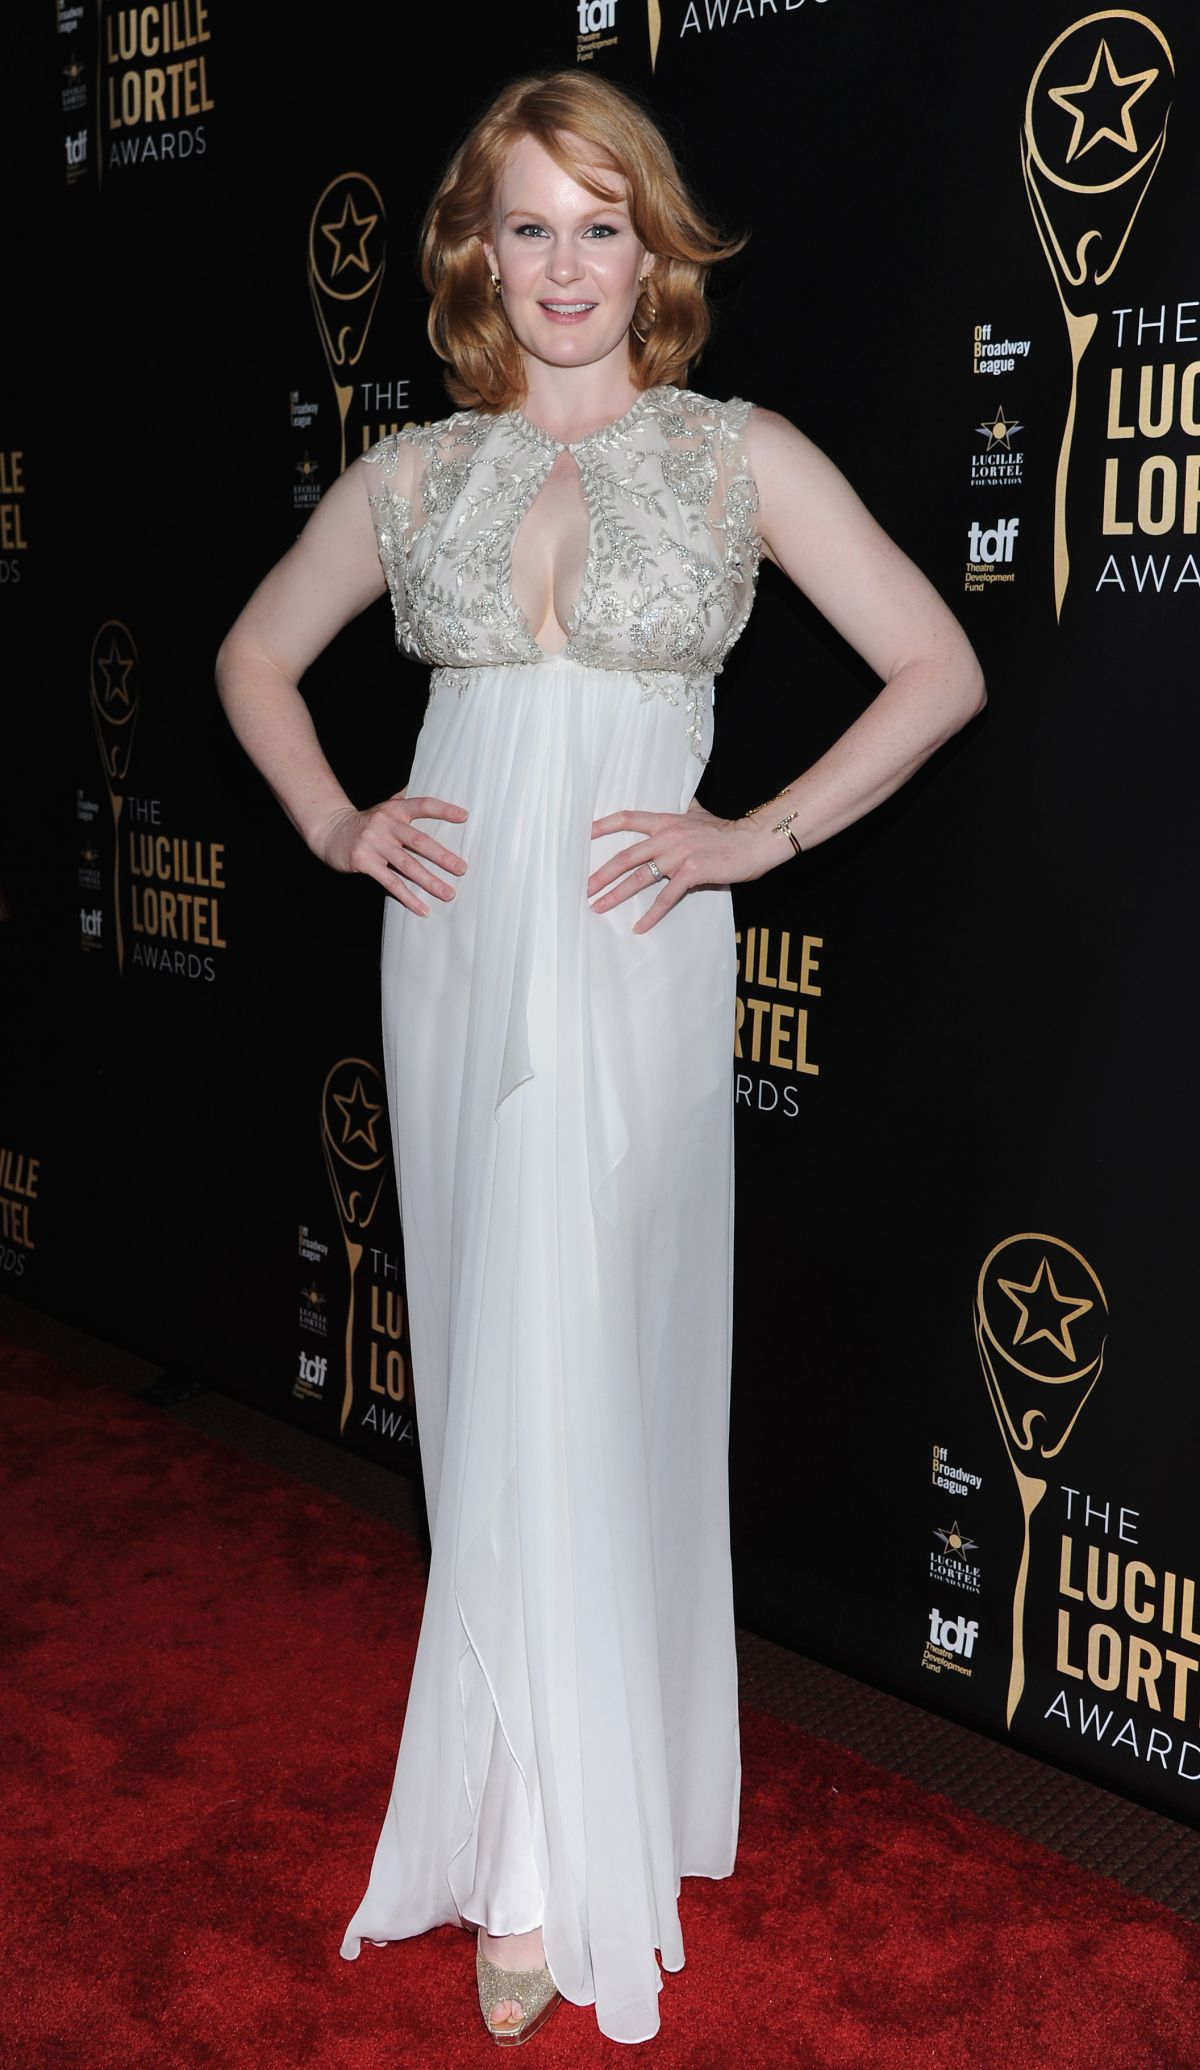 KATE BALDWIN at 30th Annual Lucille Lortel Awards in New York